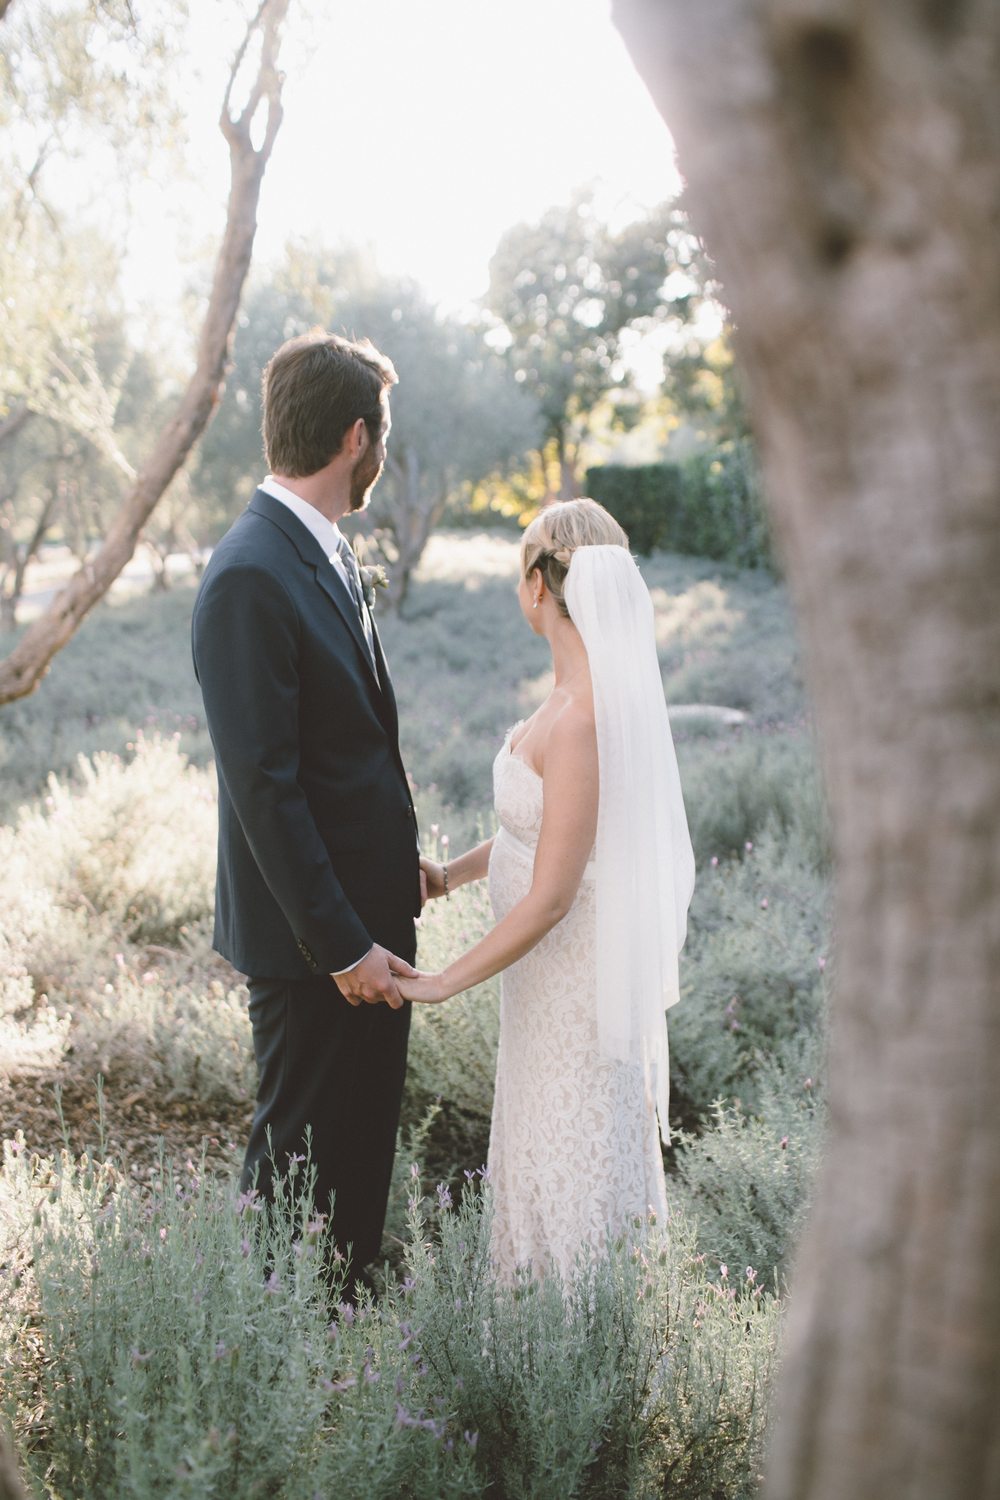 magnoliaeventdesign.com | San Ysidro Ranch Wedding Photographed by Anna Delores | Magnolia Event Design | Santa Barbara Wedding Planning and Design